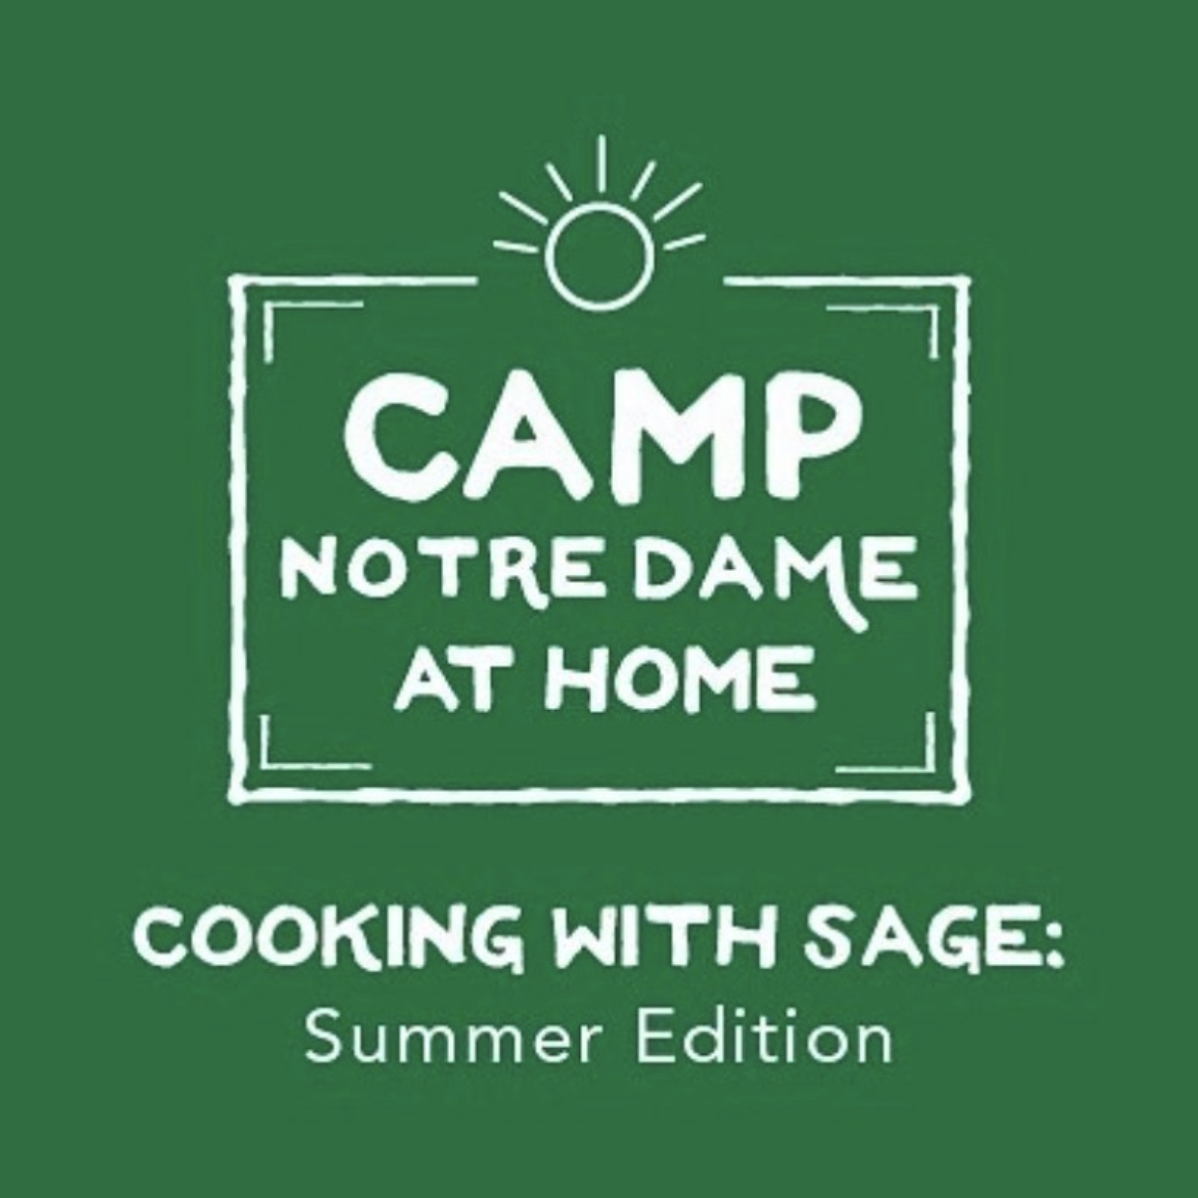 cooking with SAGE logo green